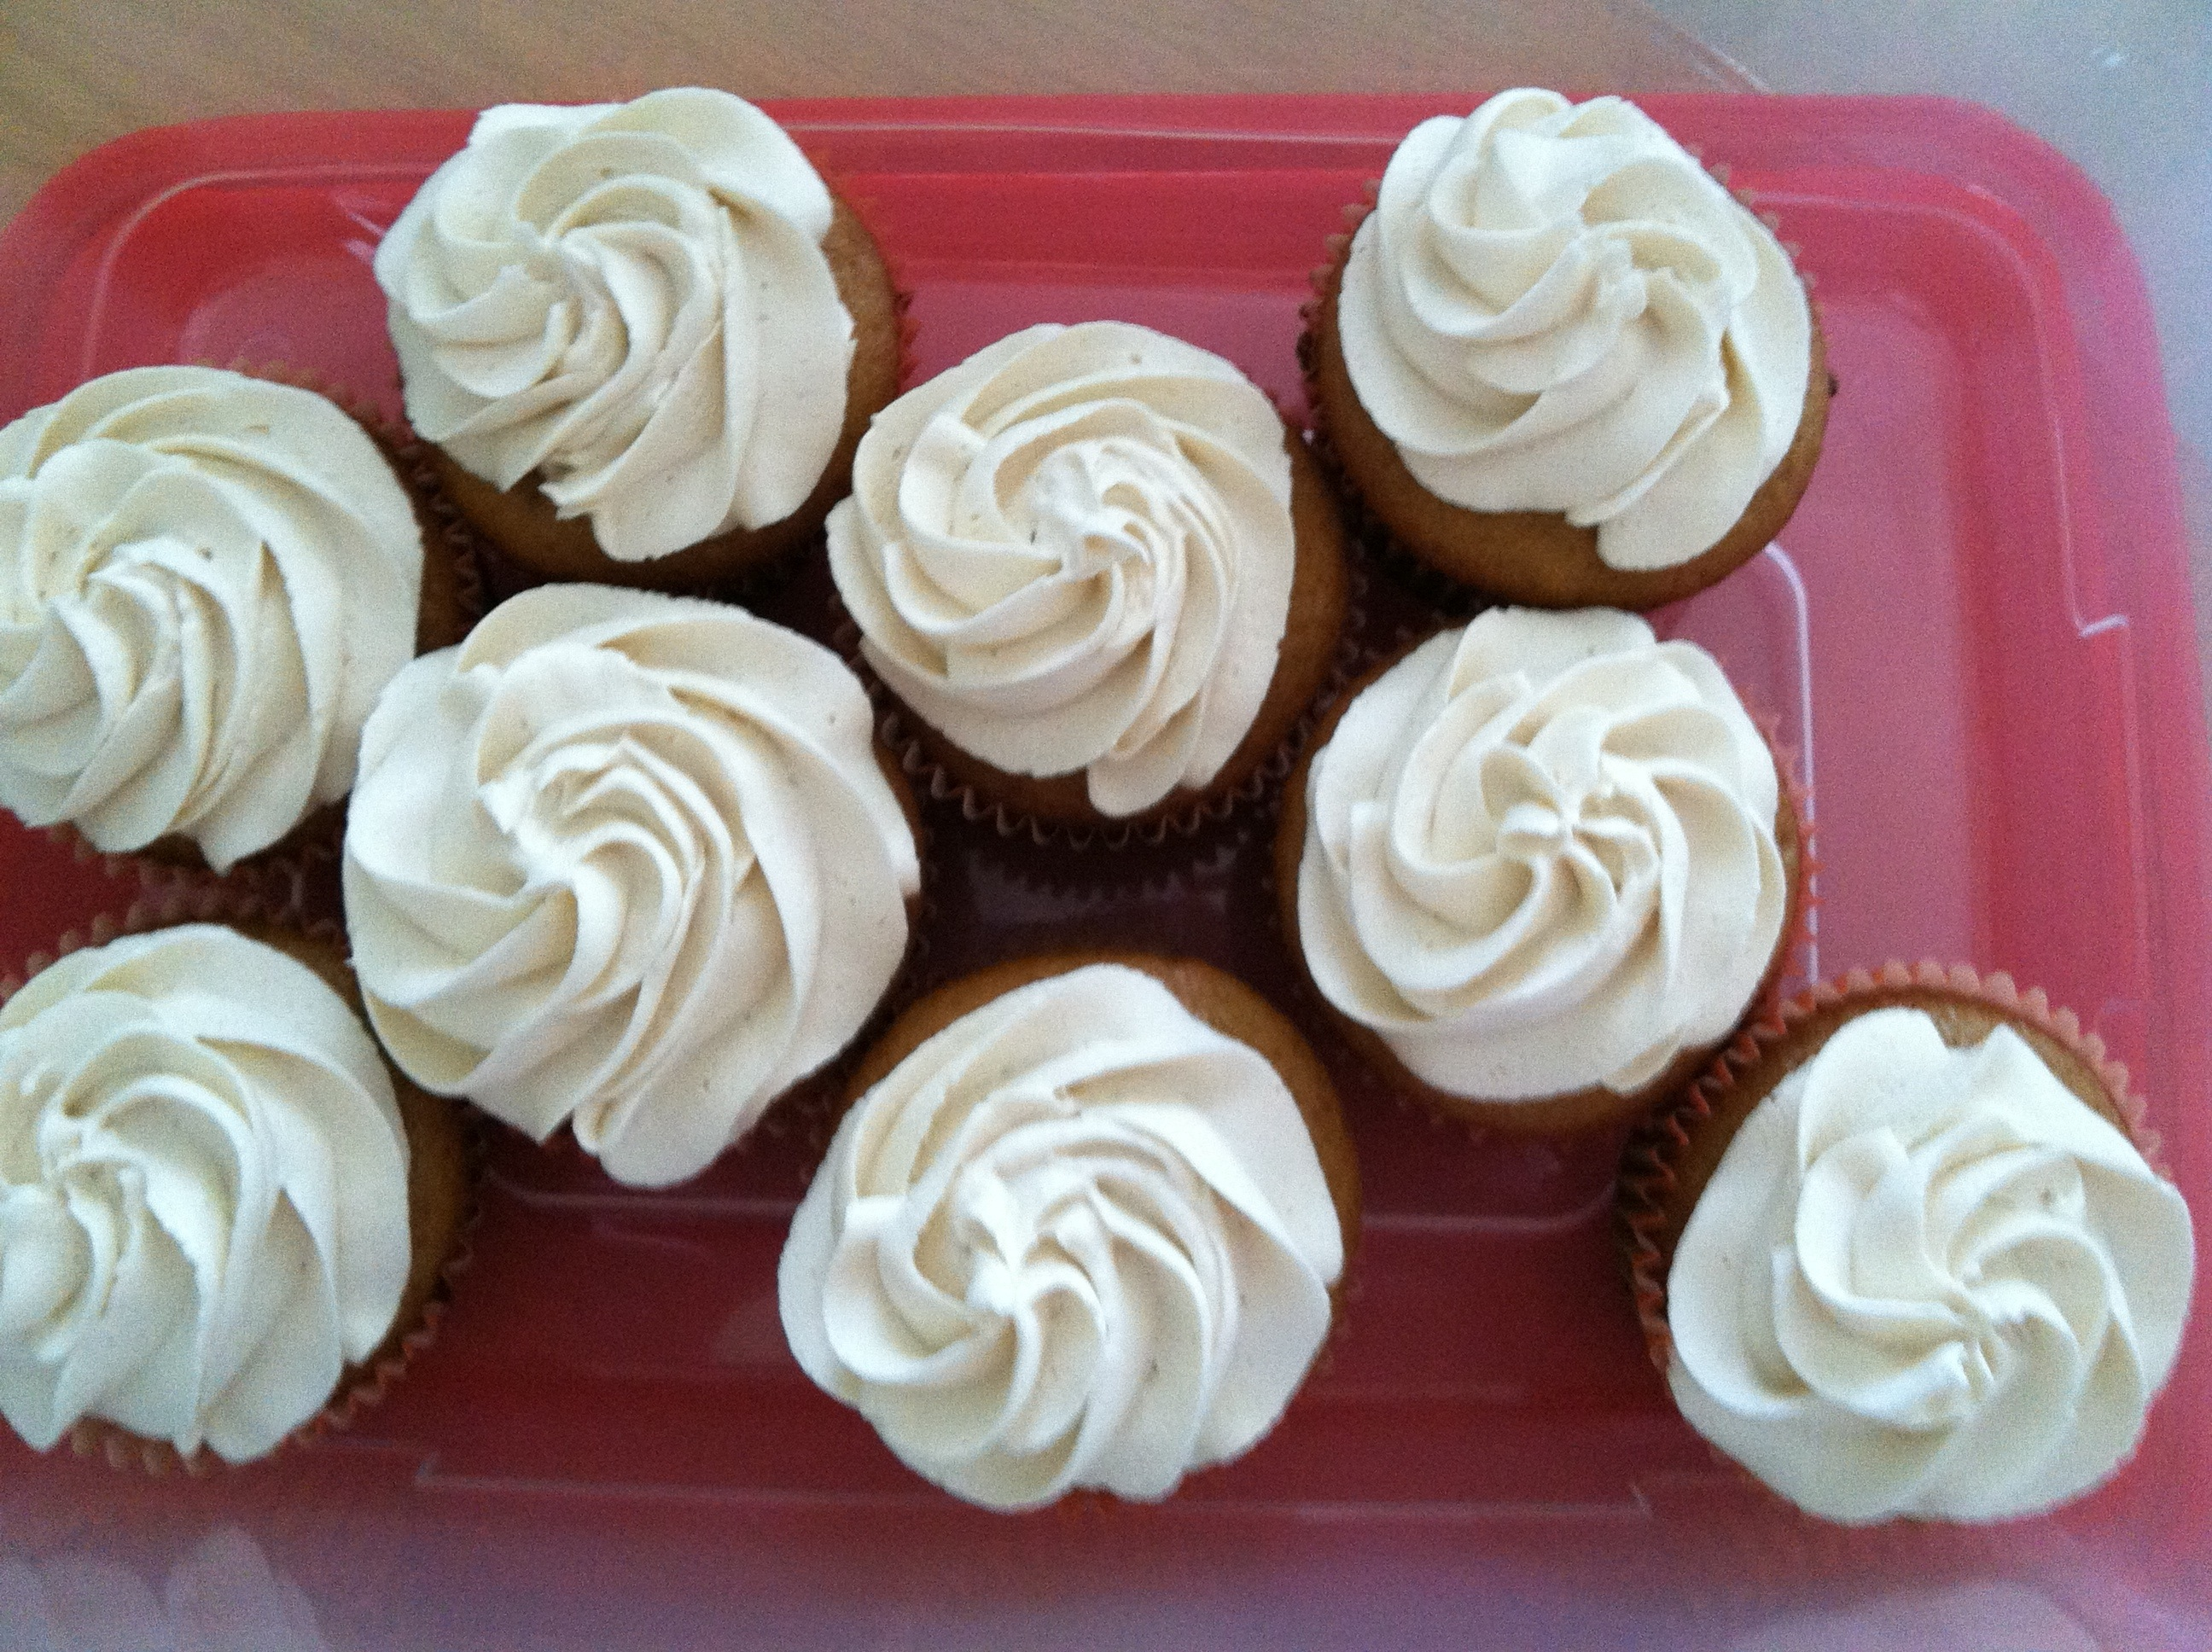 Low Fat Brown Sugar Cupcakes with Kahlua Buttercream